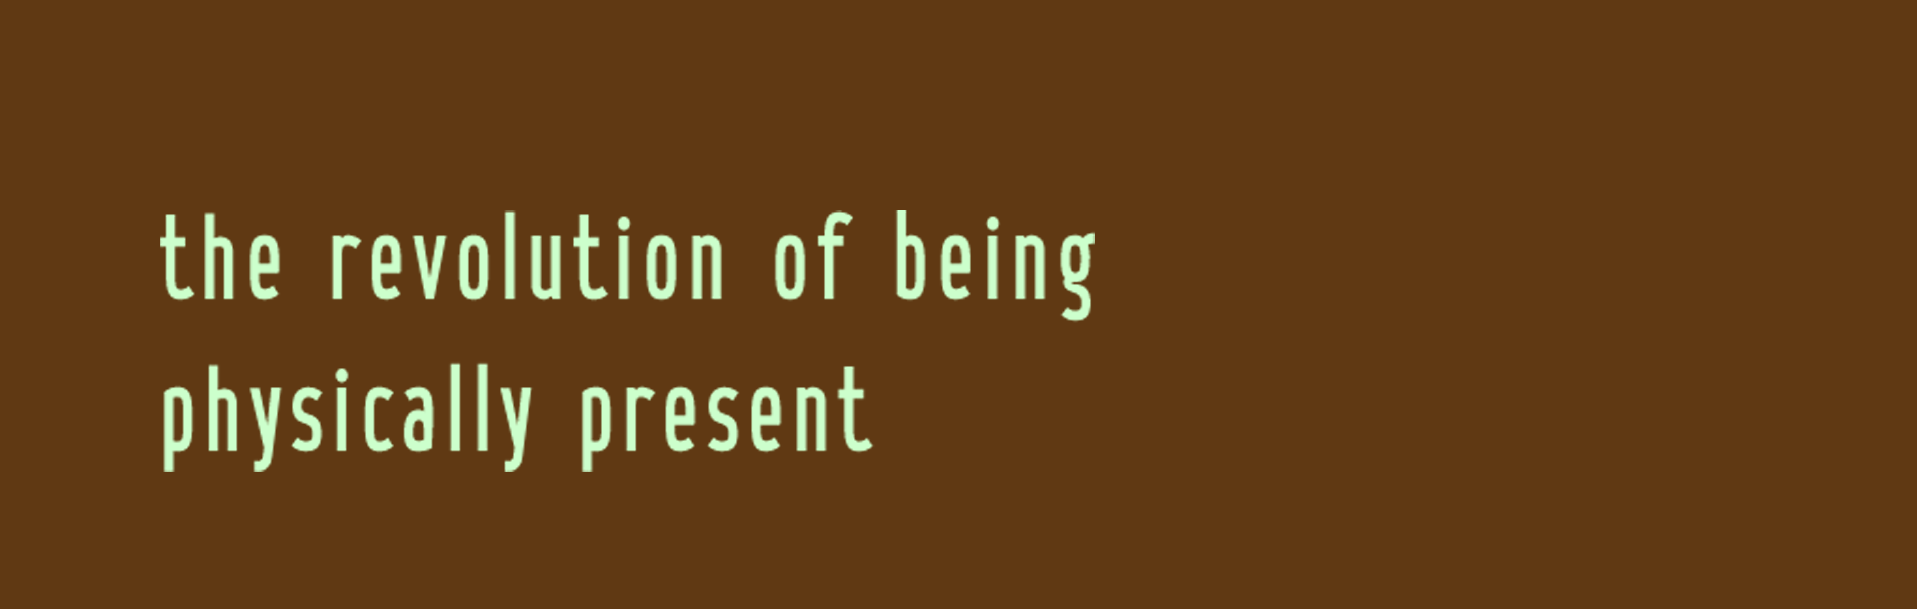 physically present2.png